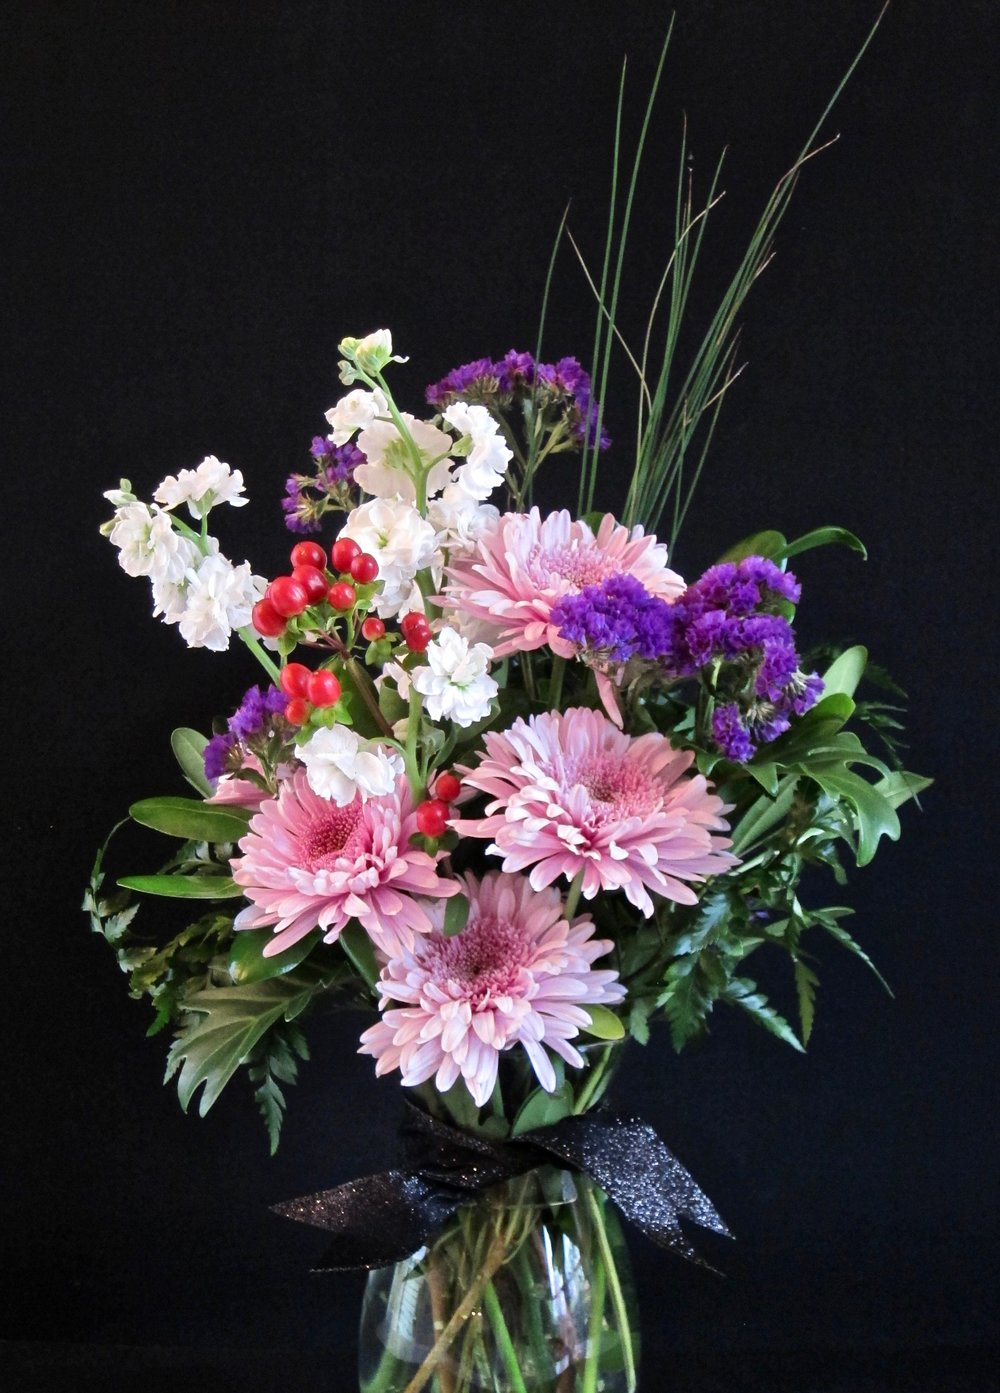 MR. SOPHISTICATE Elegant large flowers with accents of interesting foliages. Add a black bowtie for him, $45.